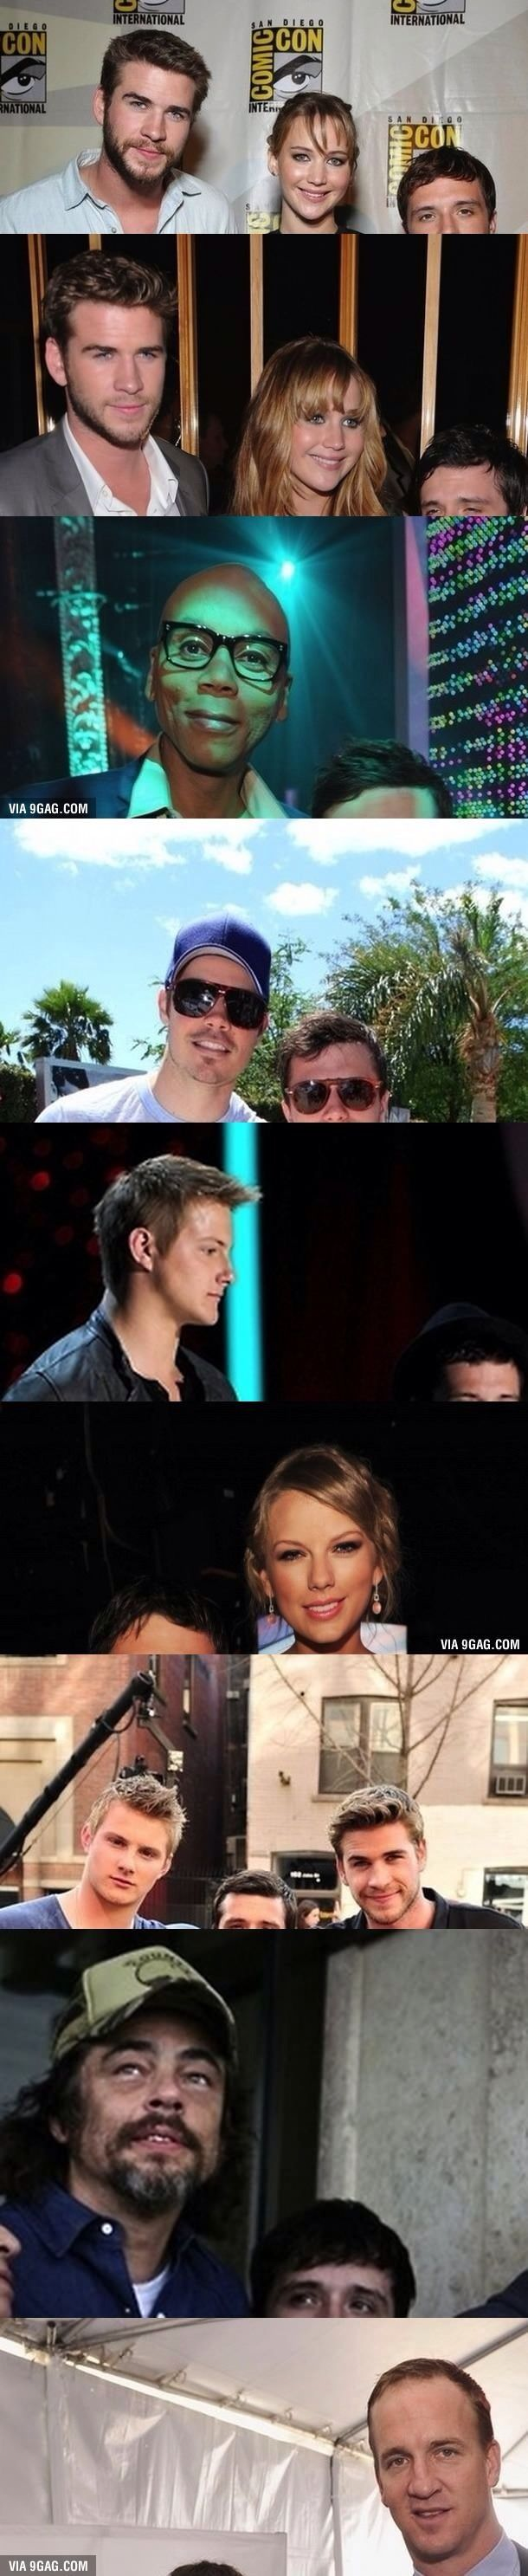 Josh with other celebs. Poor thing.